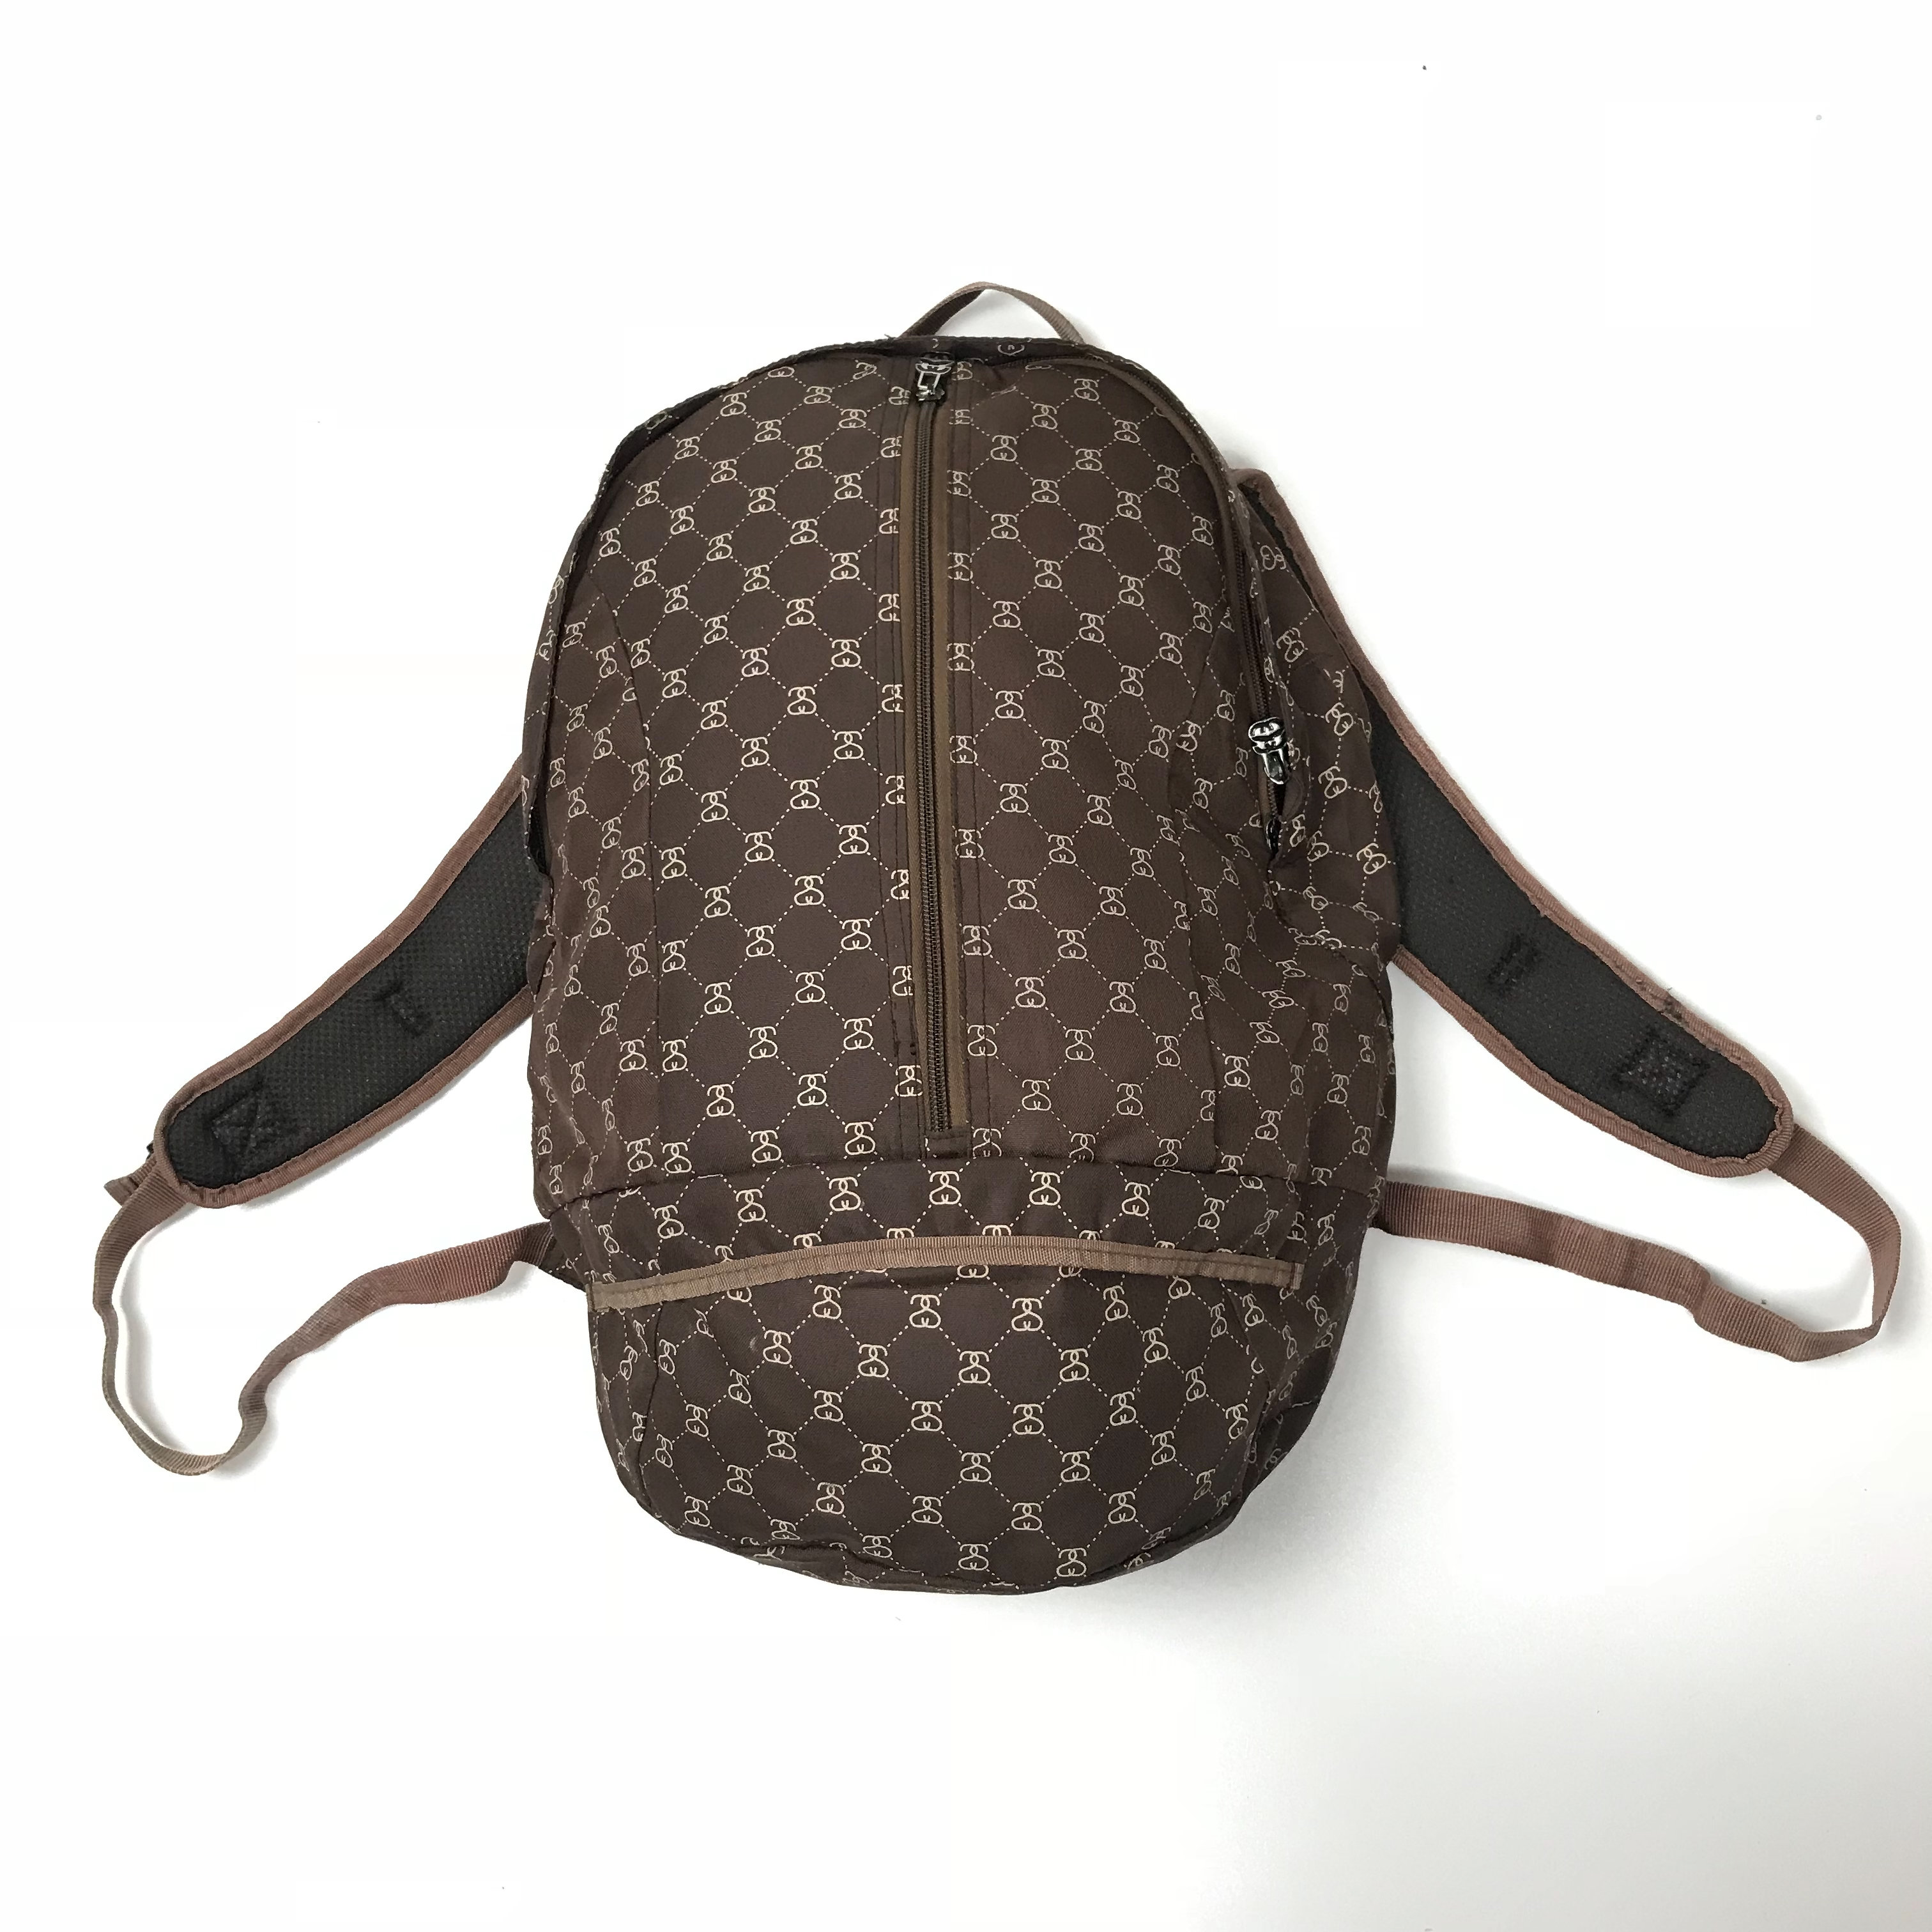 4dd0e972da81 Inspired By Gucci s Monogram Pattern Stussy Created It s Own. This Backpack  Is By Far One Of The Rarest From That Selection. Notes  No Holes Rips Or  Stains.